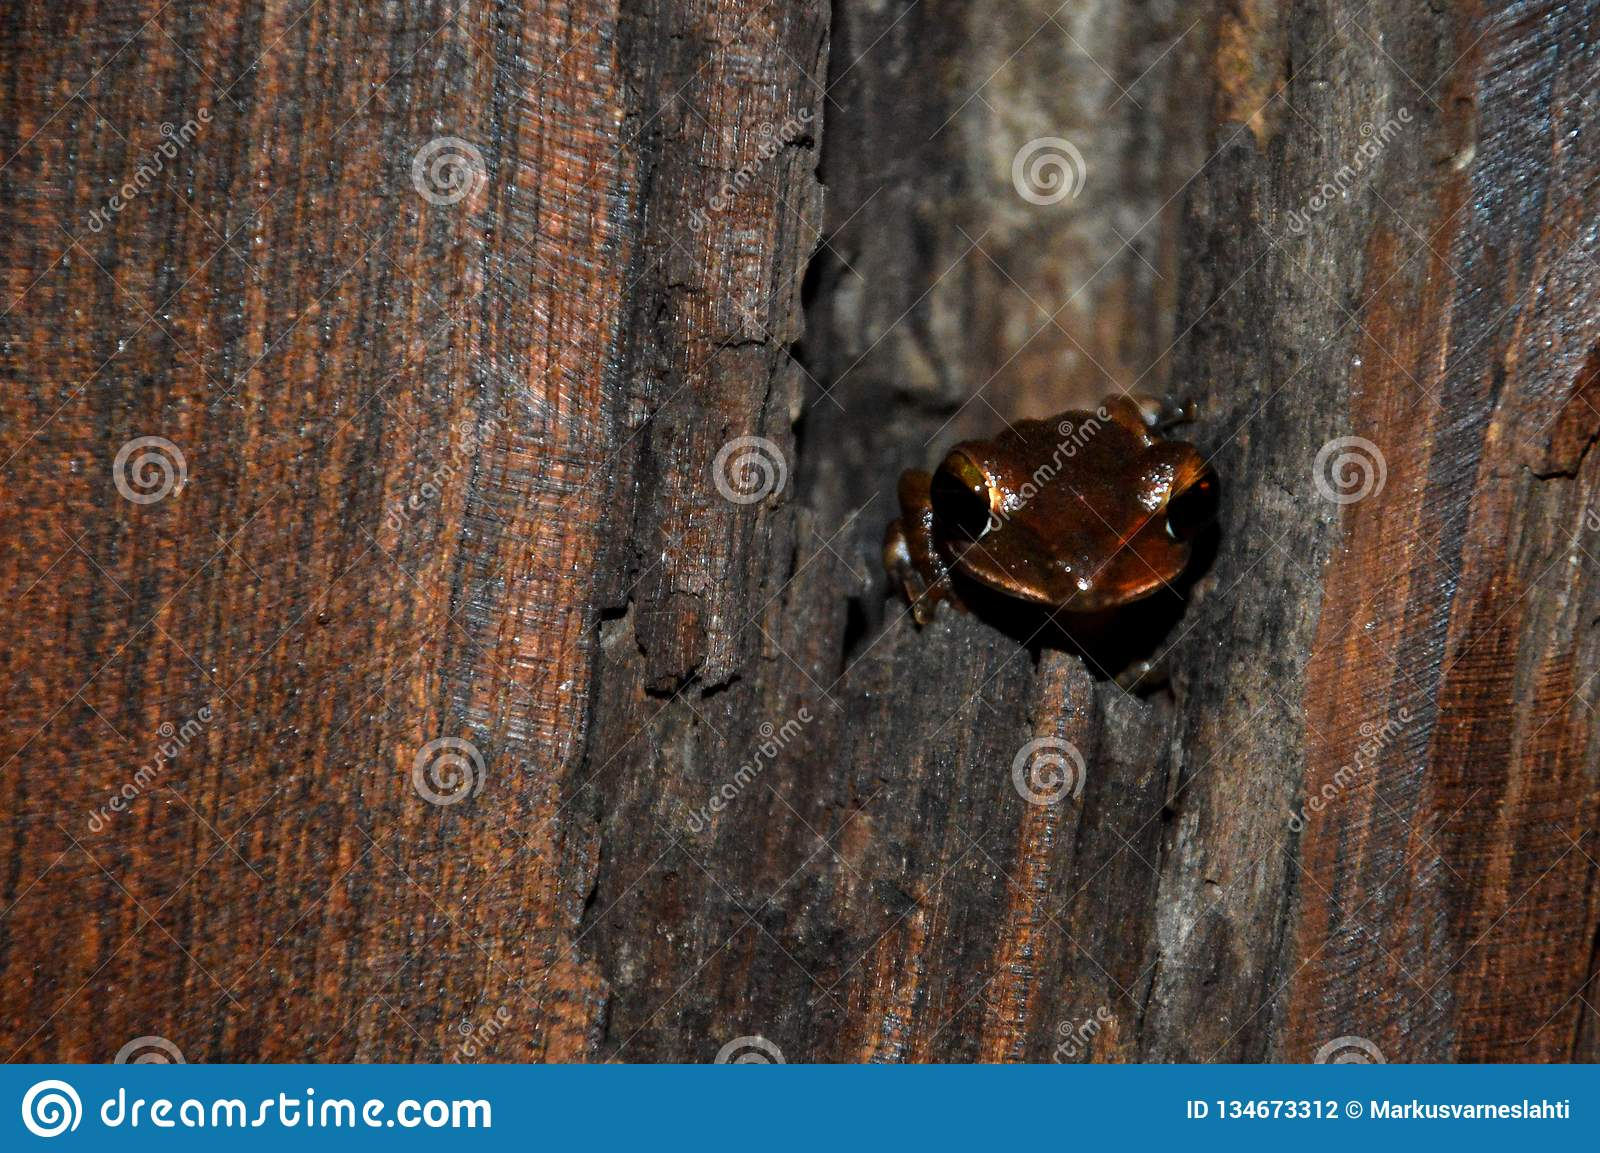 Small brown frog in a tree.